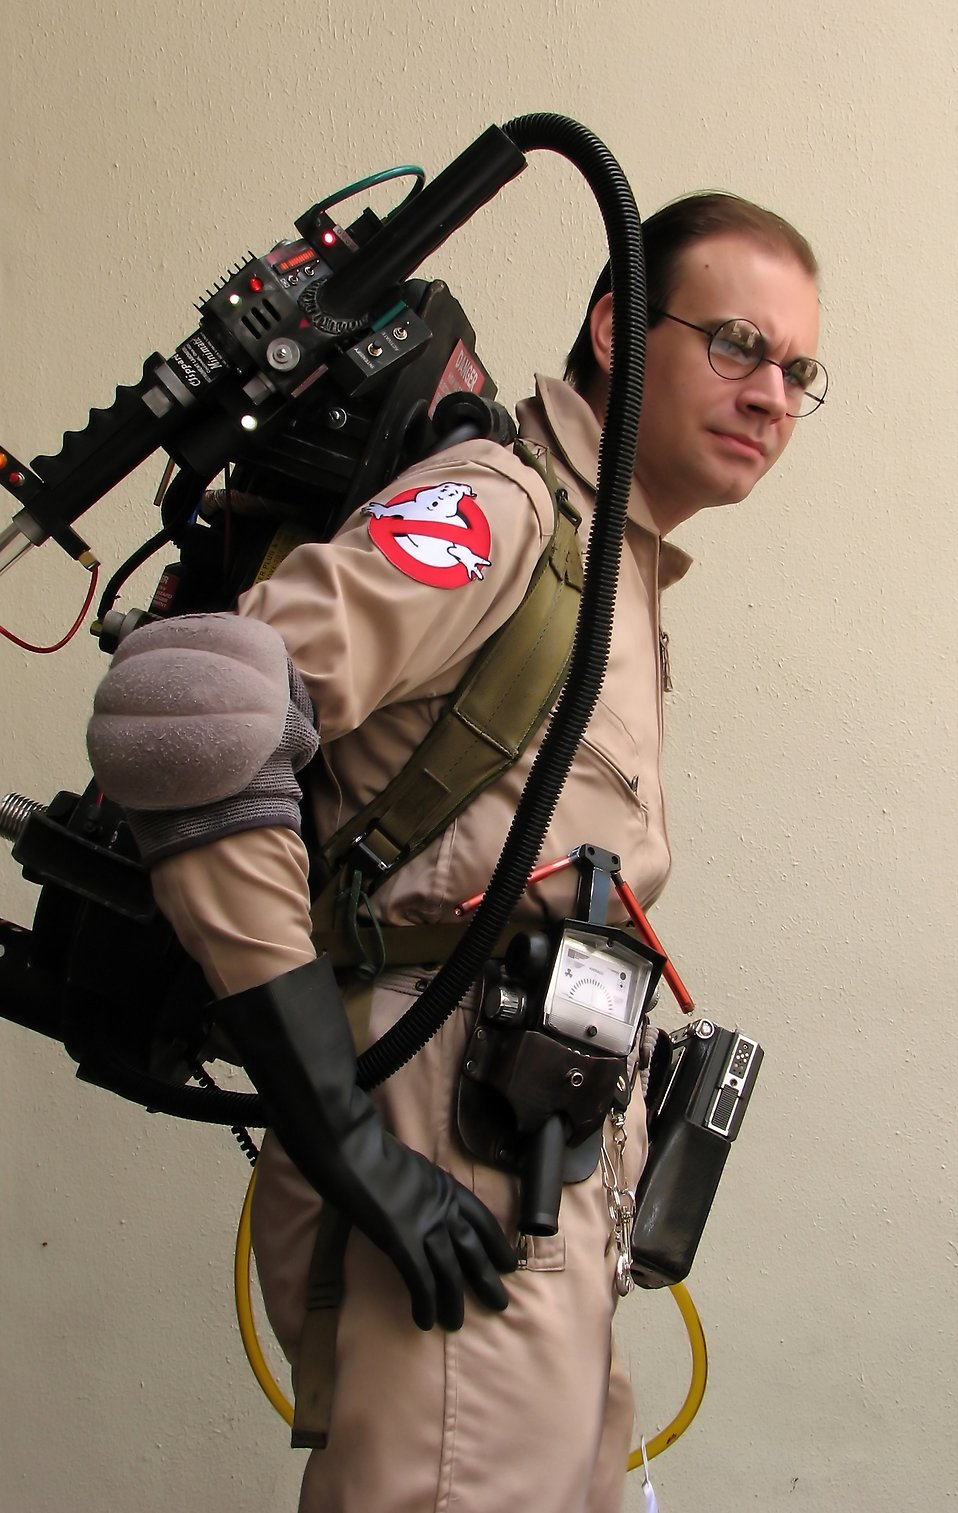 A man in a Ghostbusters costume at Dragoncon 2009 in Atlanta, Georgia : Free Stock Photo